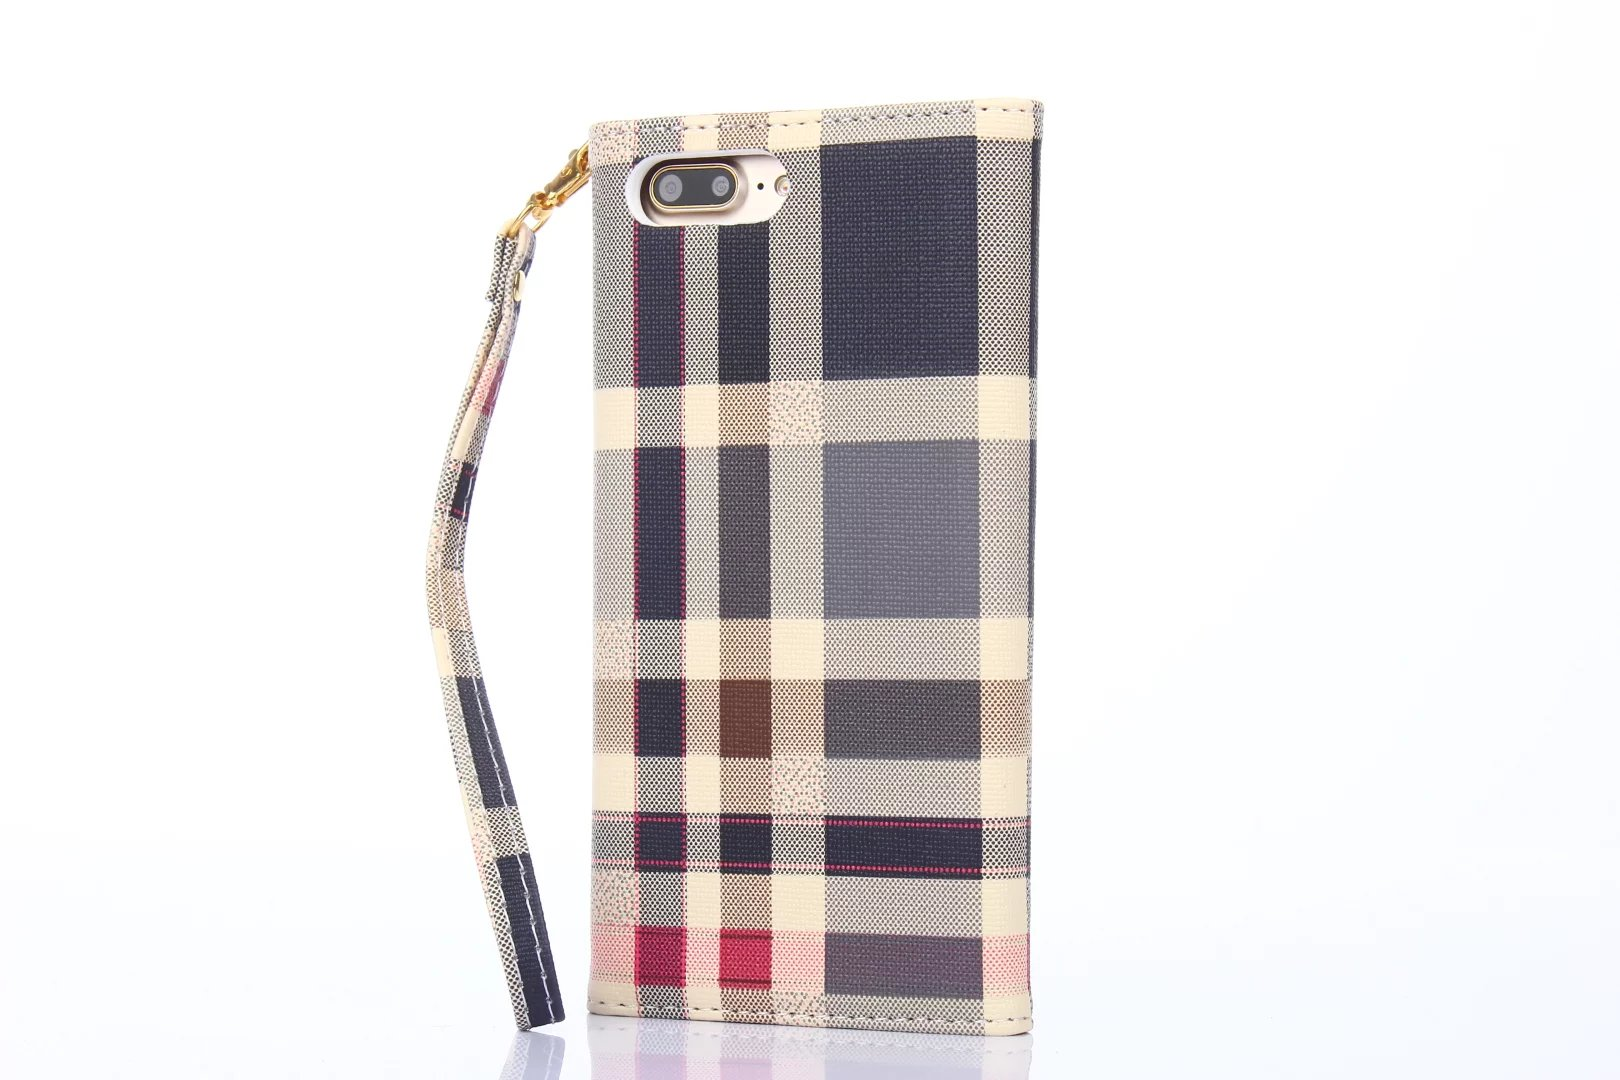 apple iphone 8 covers cell phone cases for iphone 8 Burberry iphone 8 case cases for the iphone 8 iphone 8 plus case brand iphone 8 black cover best phone covers cover cell phone iphone 8 cases and accessories